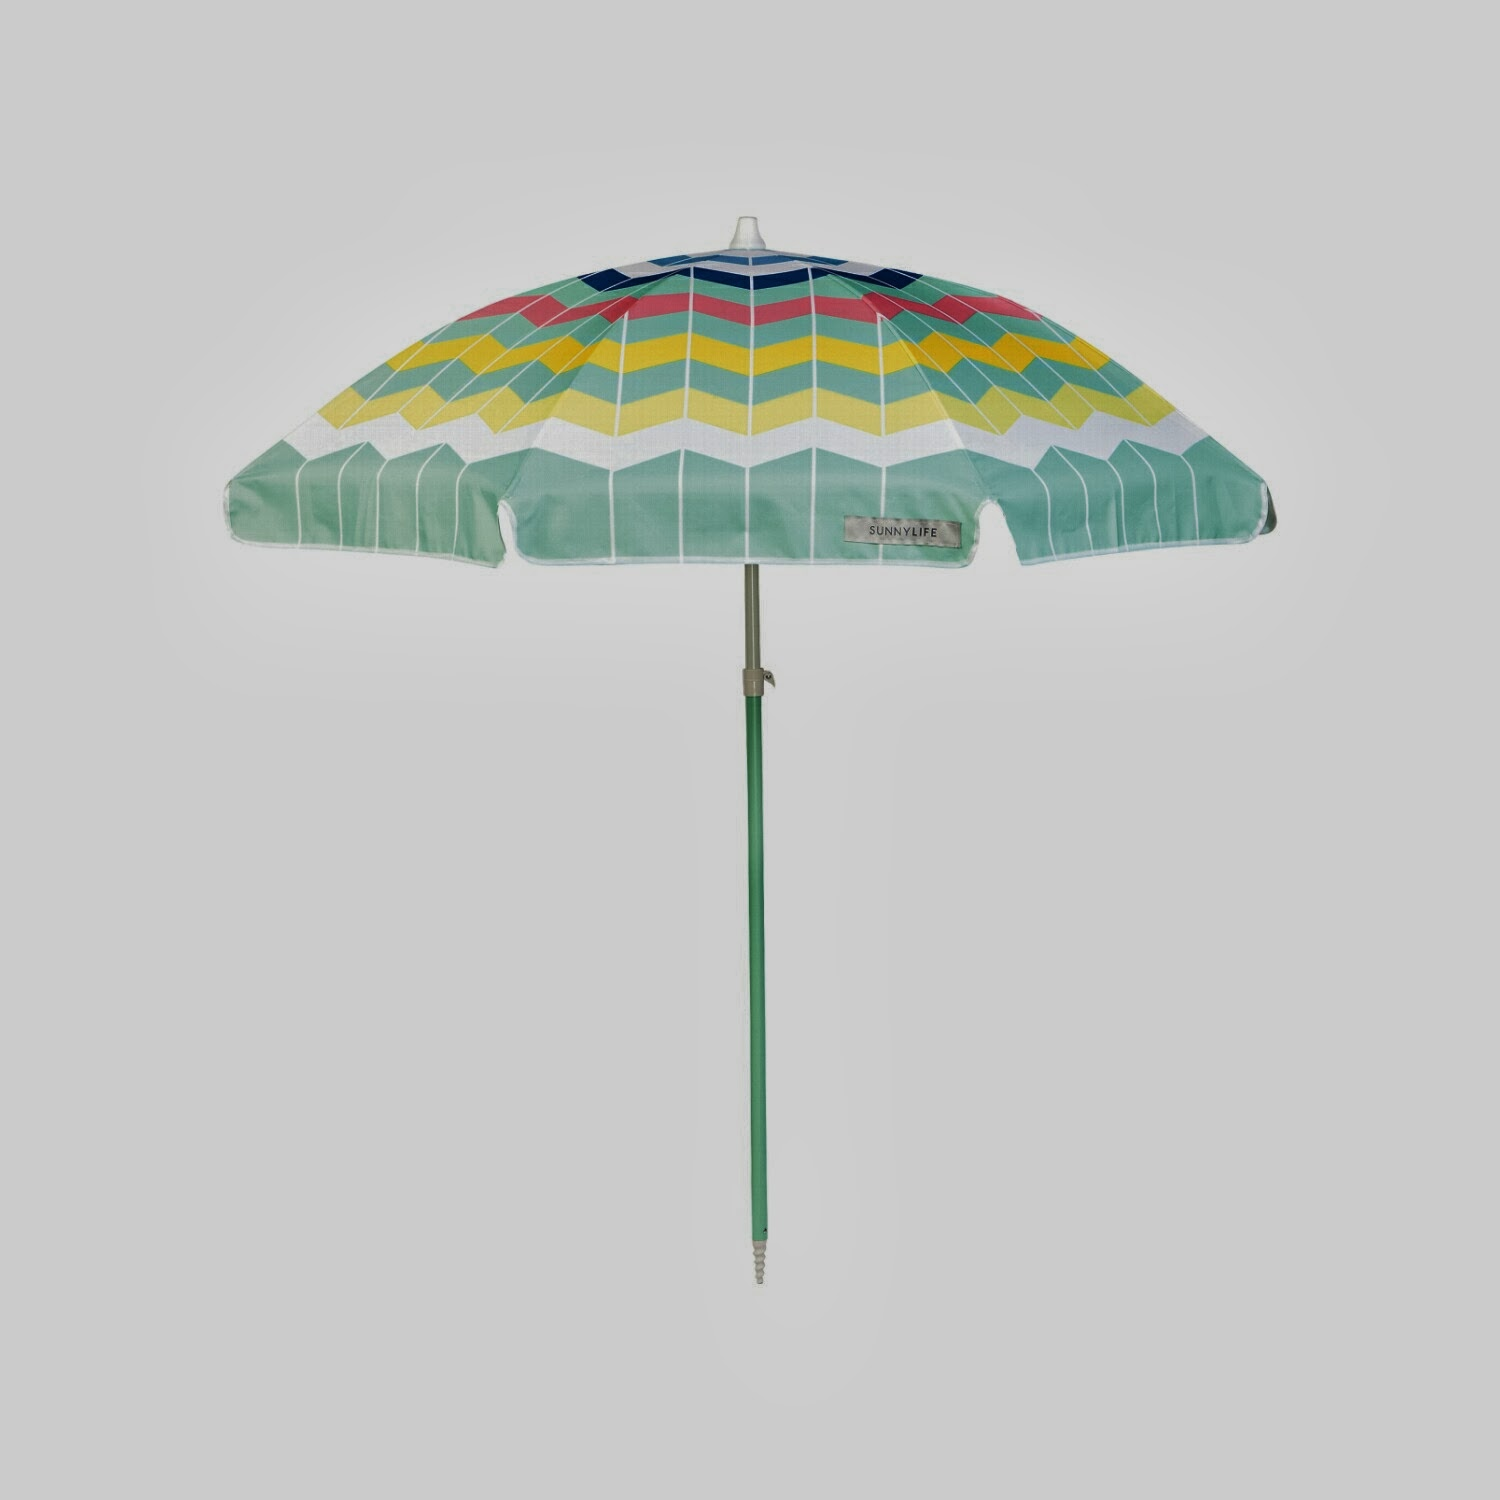 Sunnylife Iluka Beach Umbrella